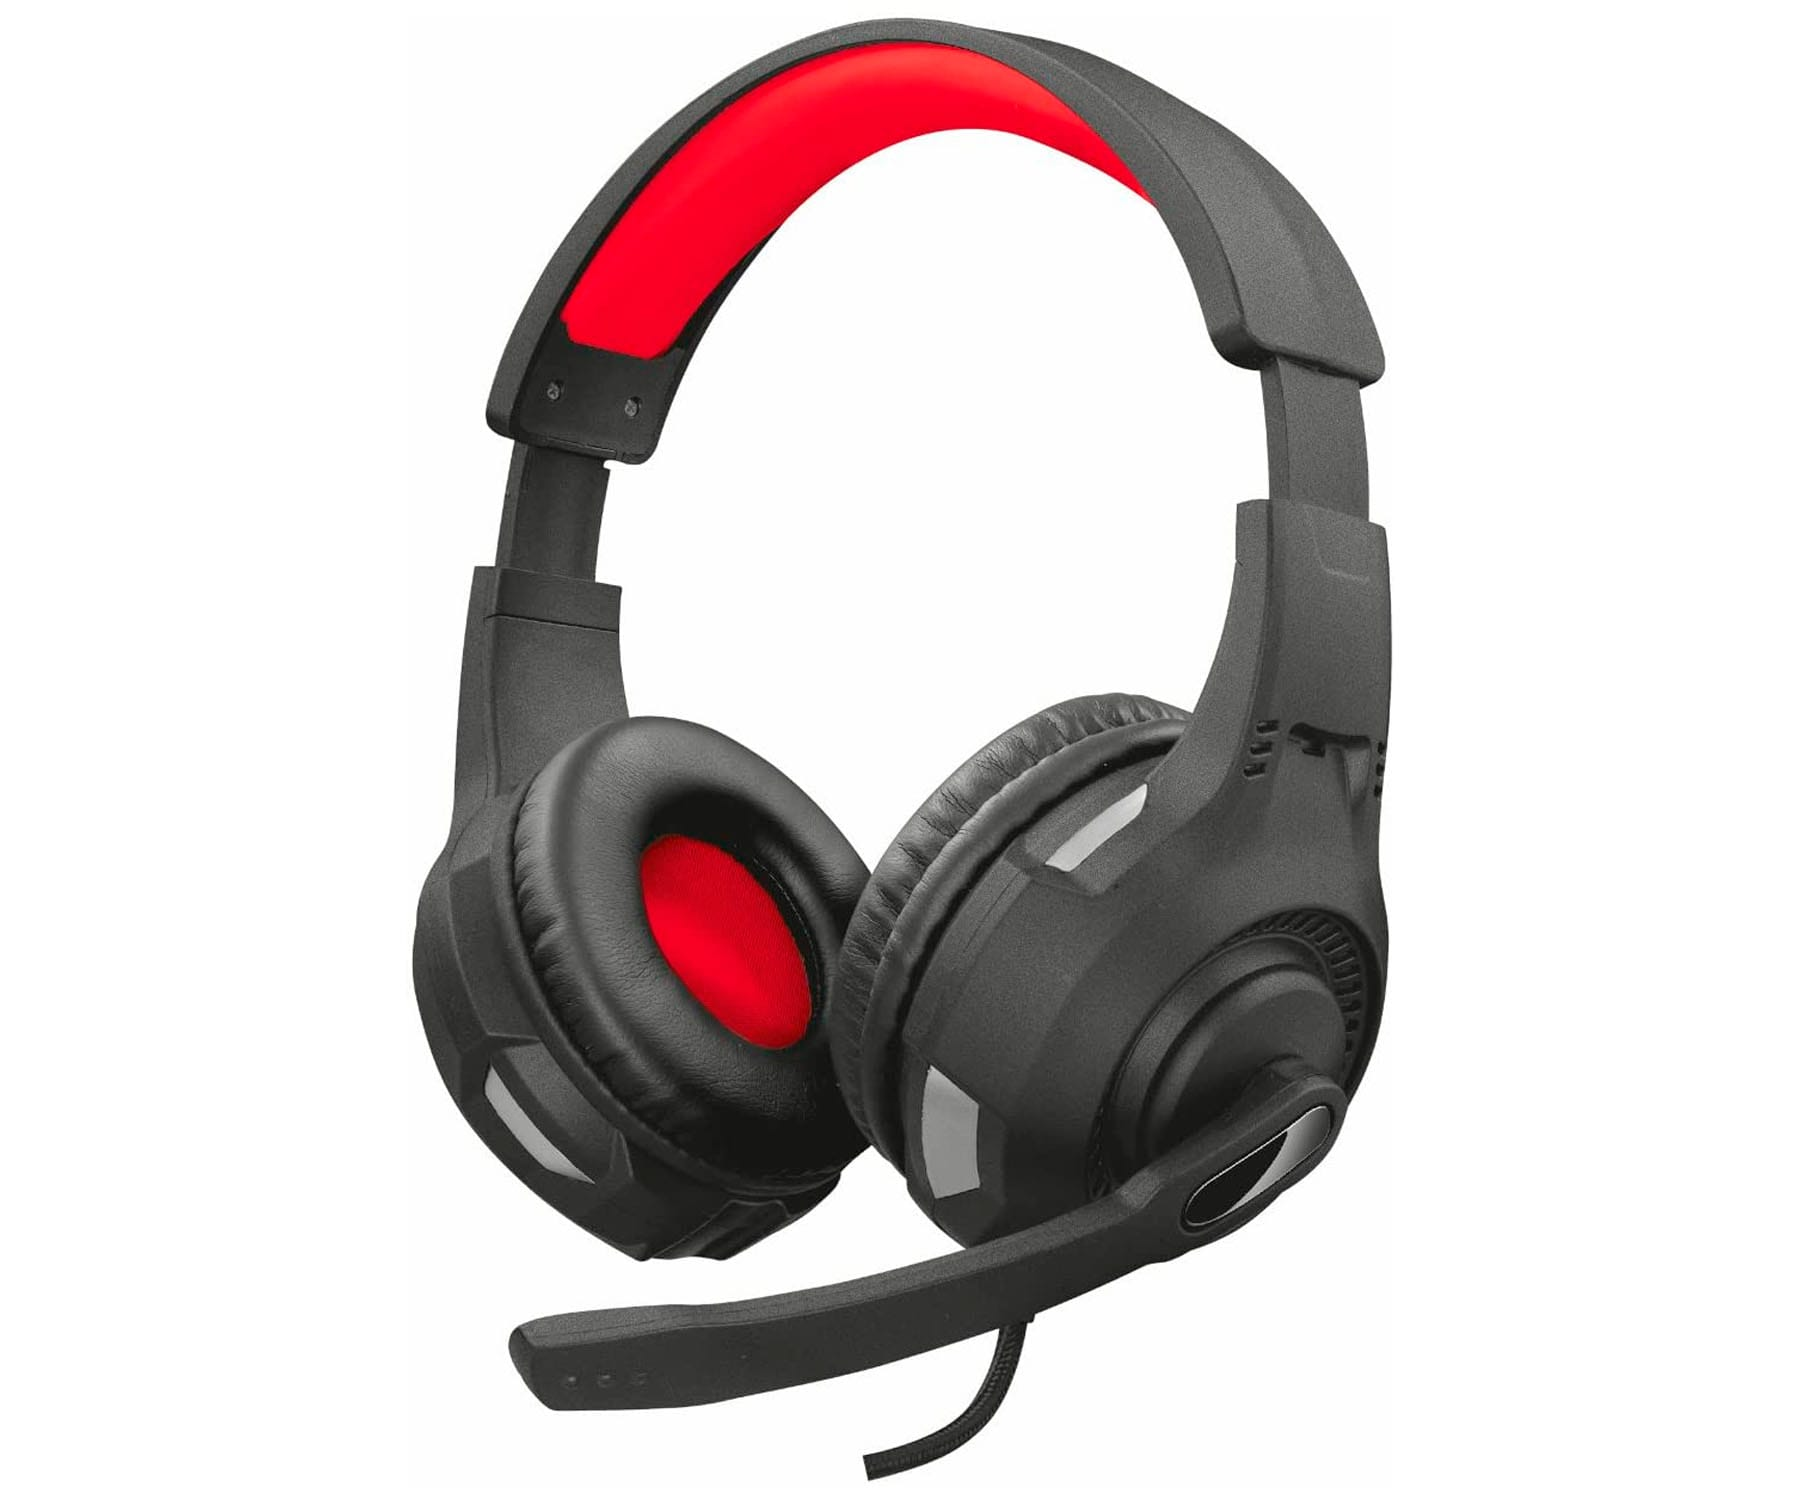 TRUST GXT307 NEGRO ROJO AURICULARES OVER-EAR CON MICRO PARA GAMING